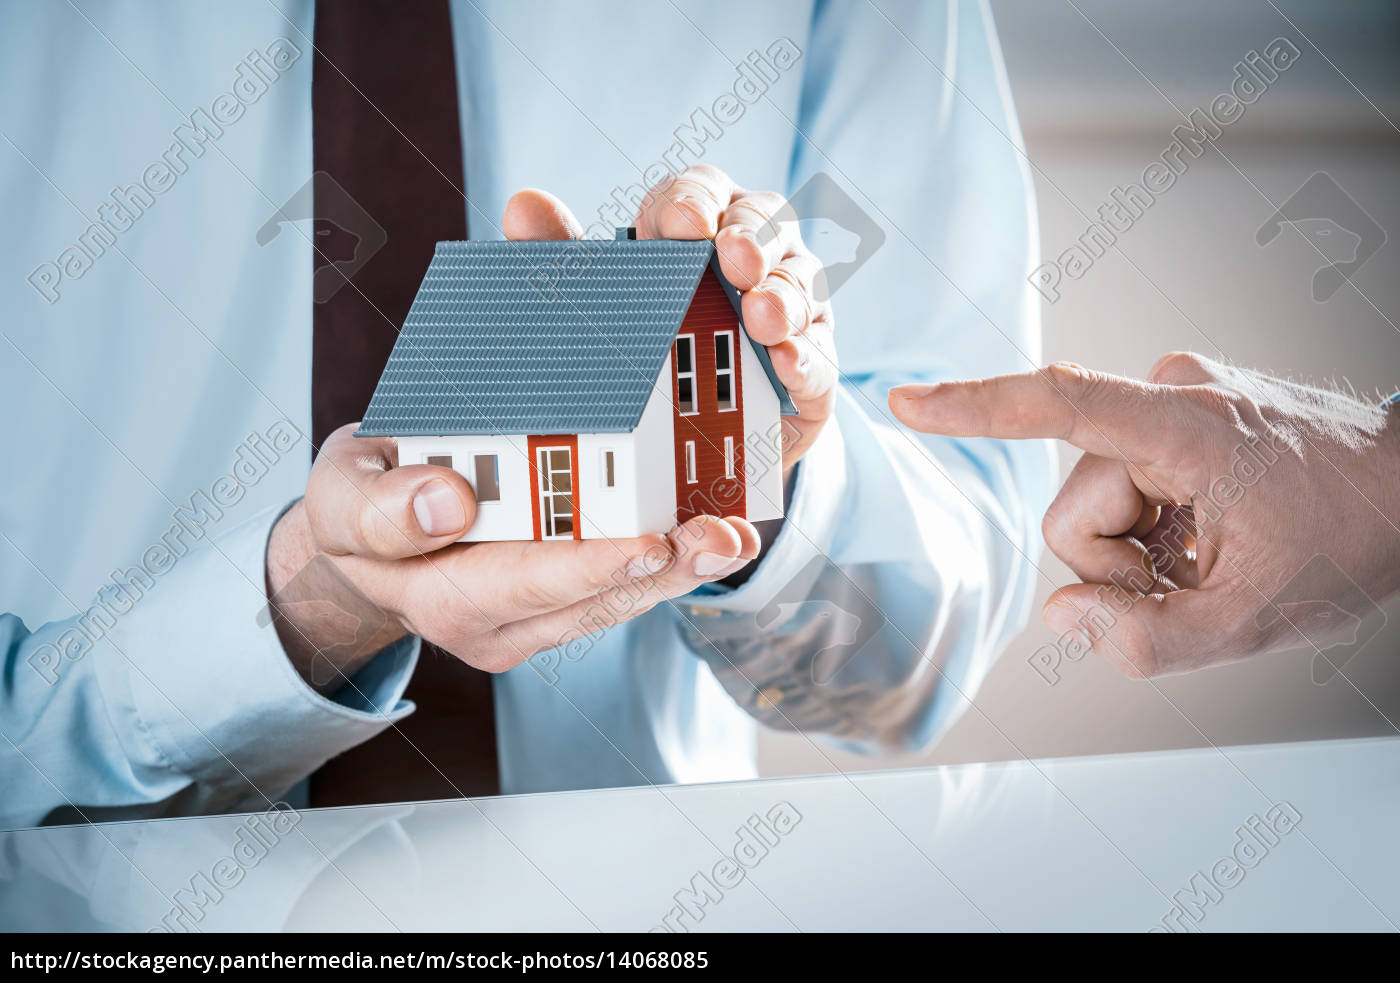 finger, pointing, miniature, house, hold, by - 14068085